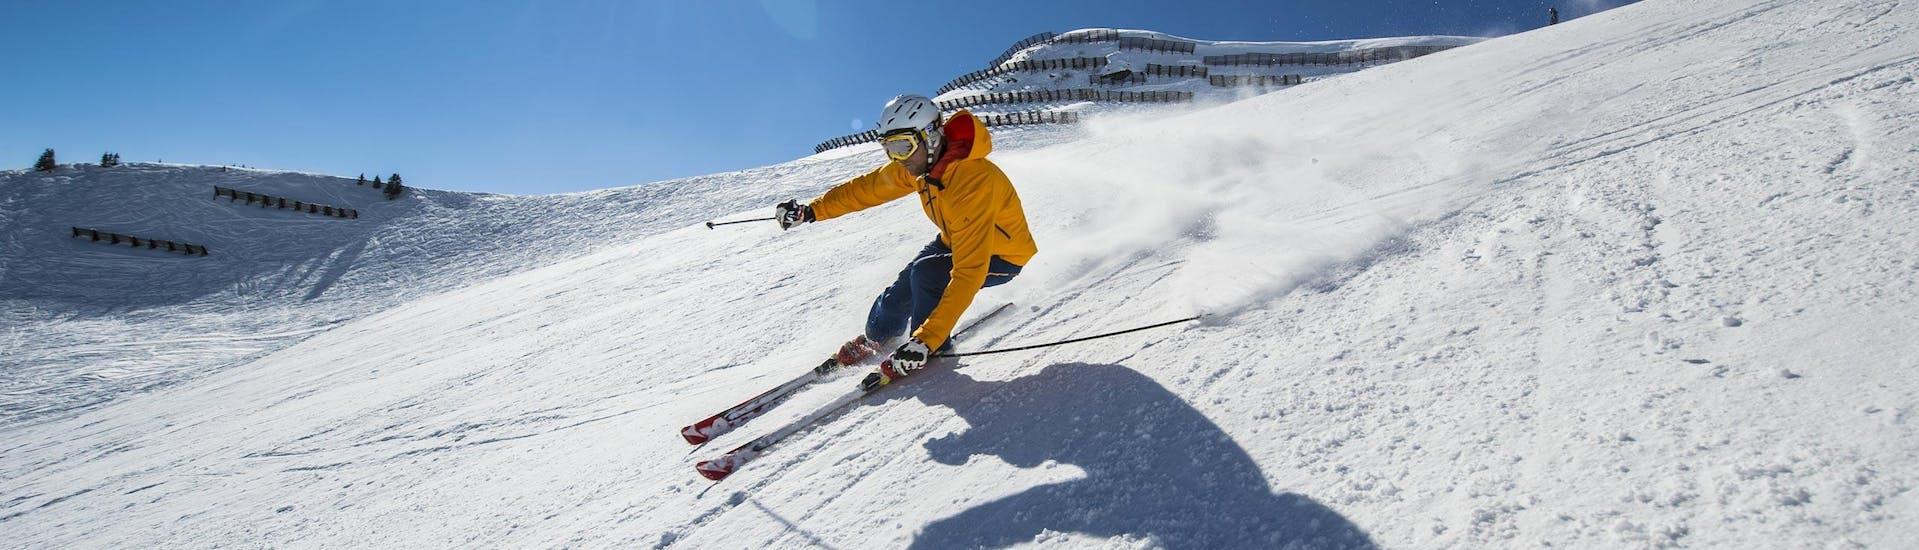 Private Ski Lessons for Adults of All Levels: A skier is skiing down a sunny ski slope while participating in an activity offered by Skischule Mösern - Seefeld.